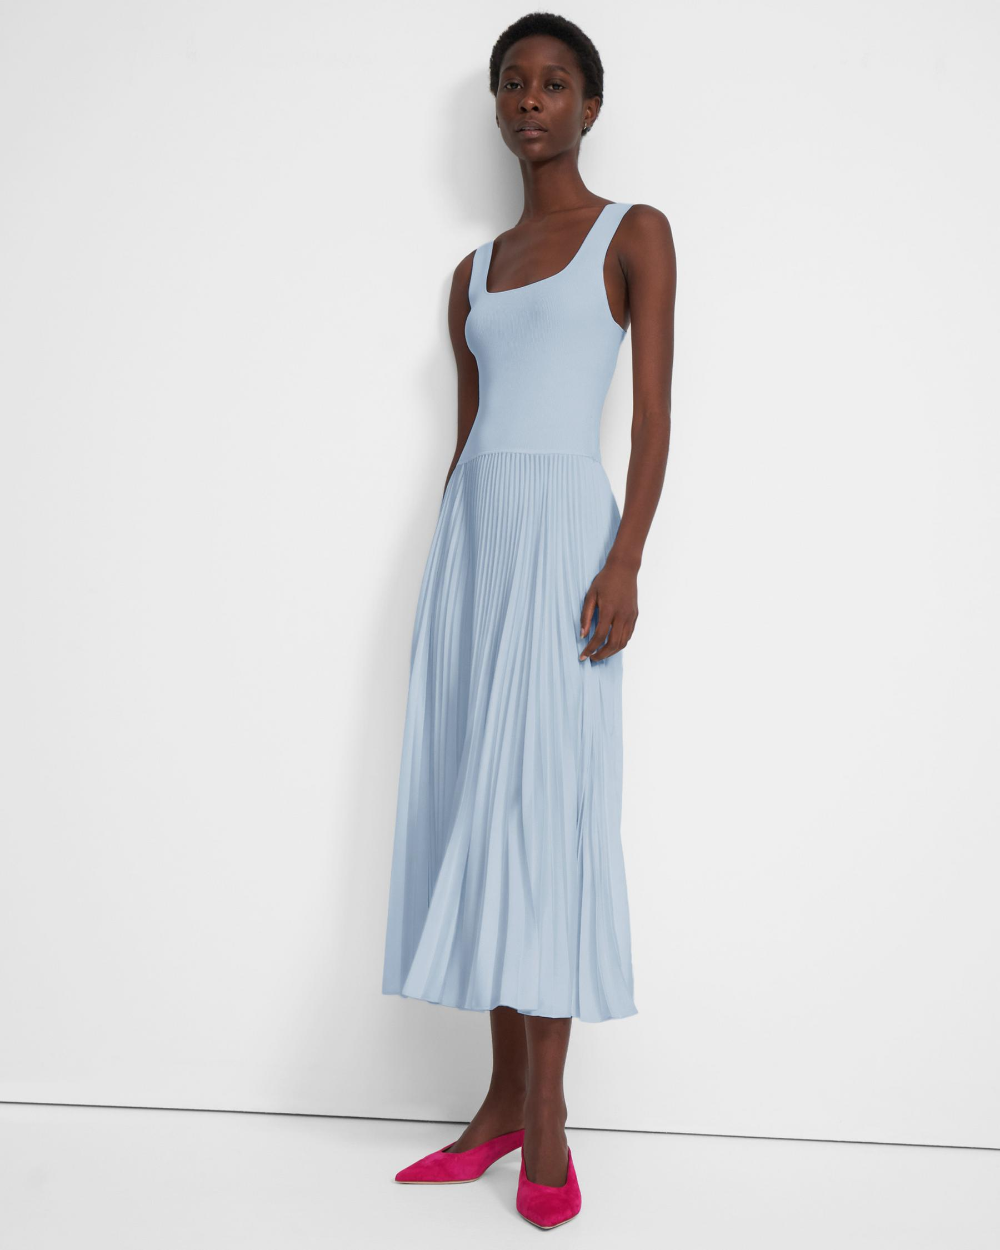 Pleated Square Neck Dress In Crepe In 2020 Square Neck Dress Ribbed Dresses Grecian Dress